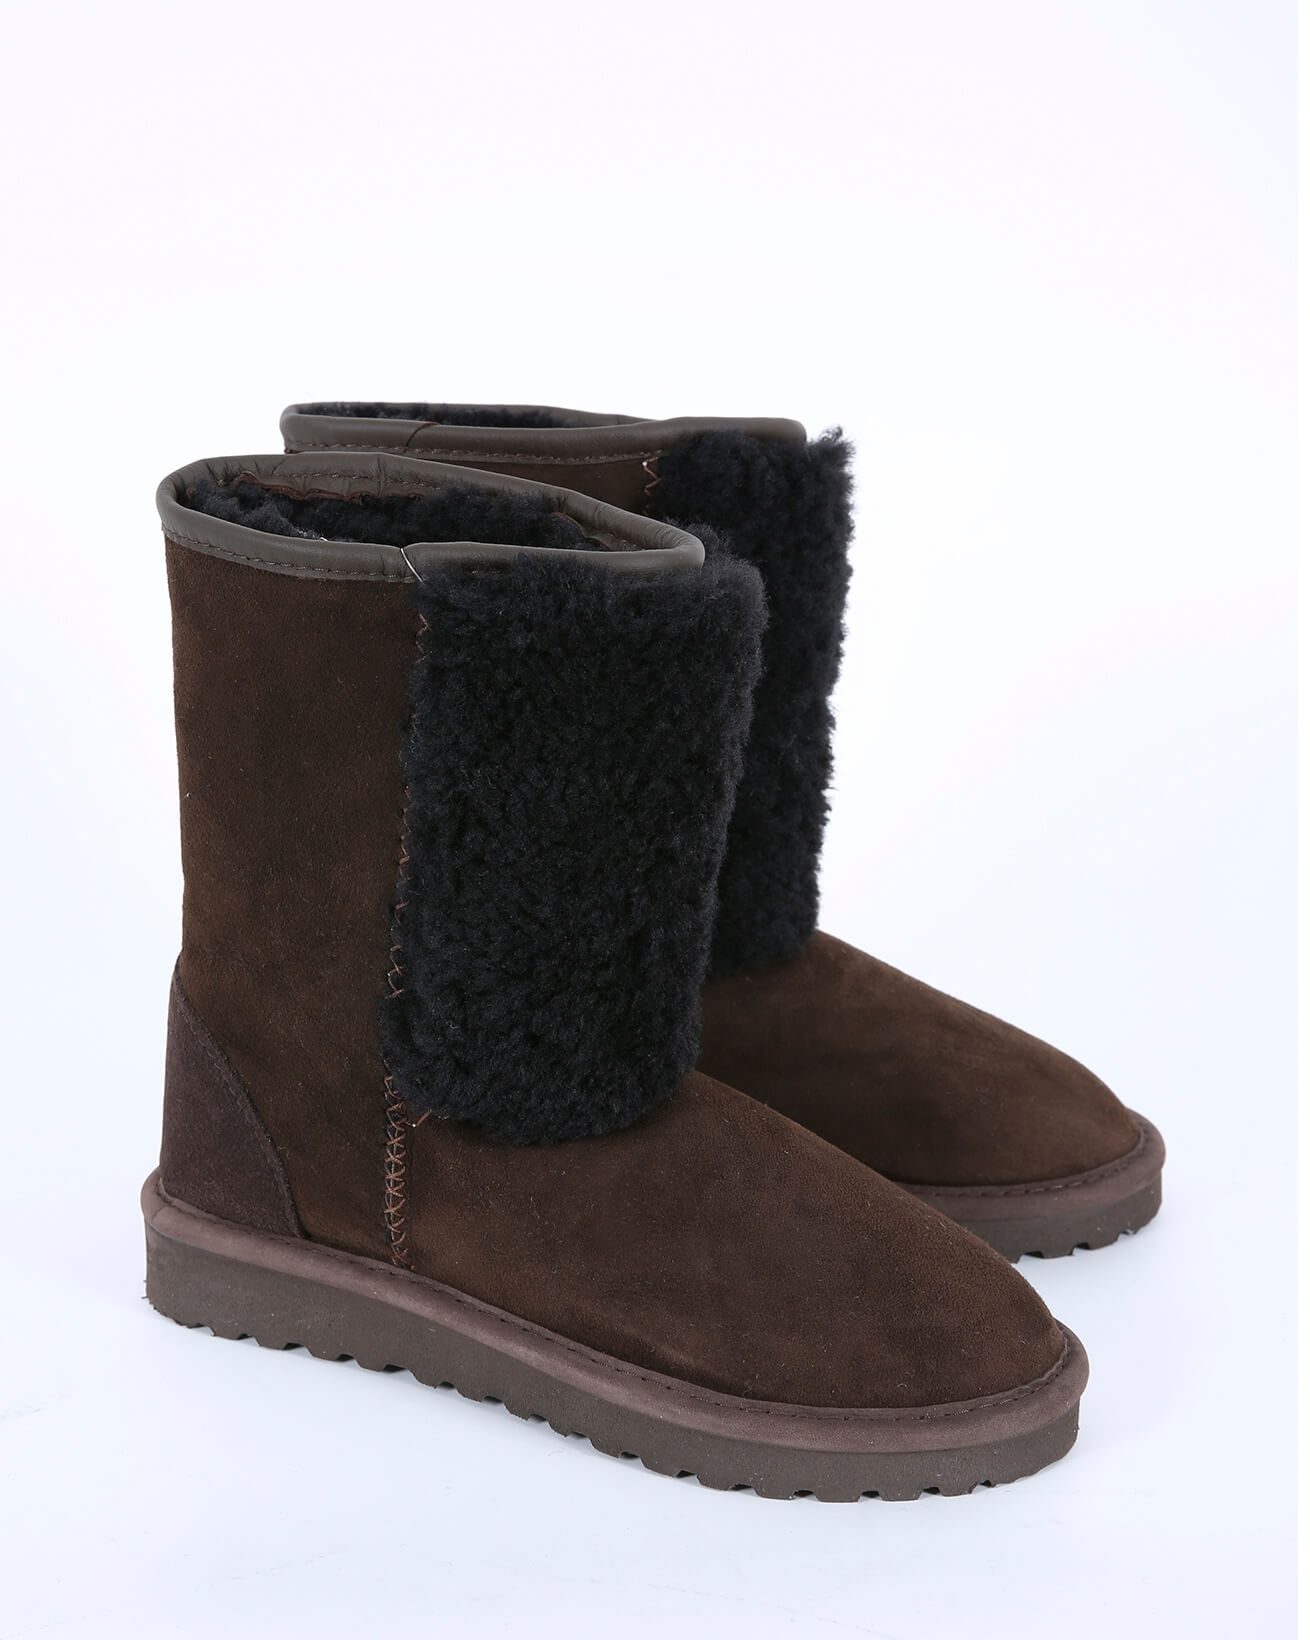 Front Panel Sheepskin Boots - Size 6 - Mocca - 561